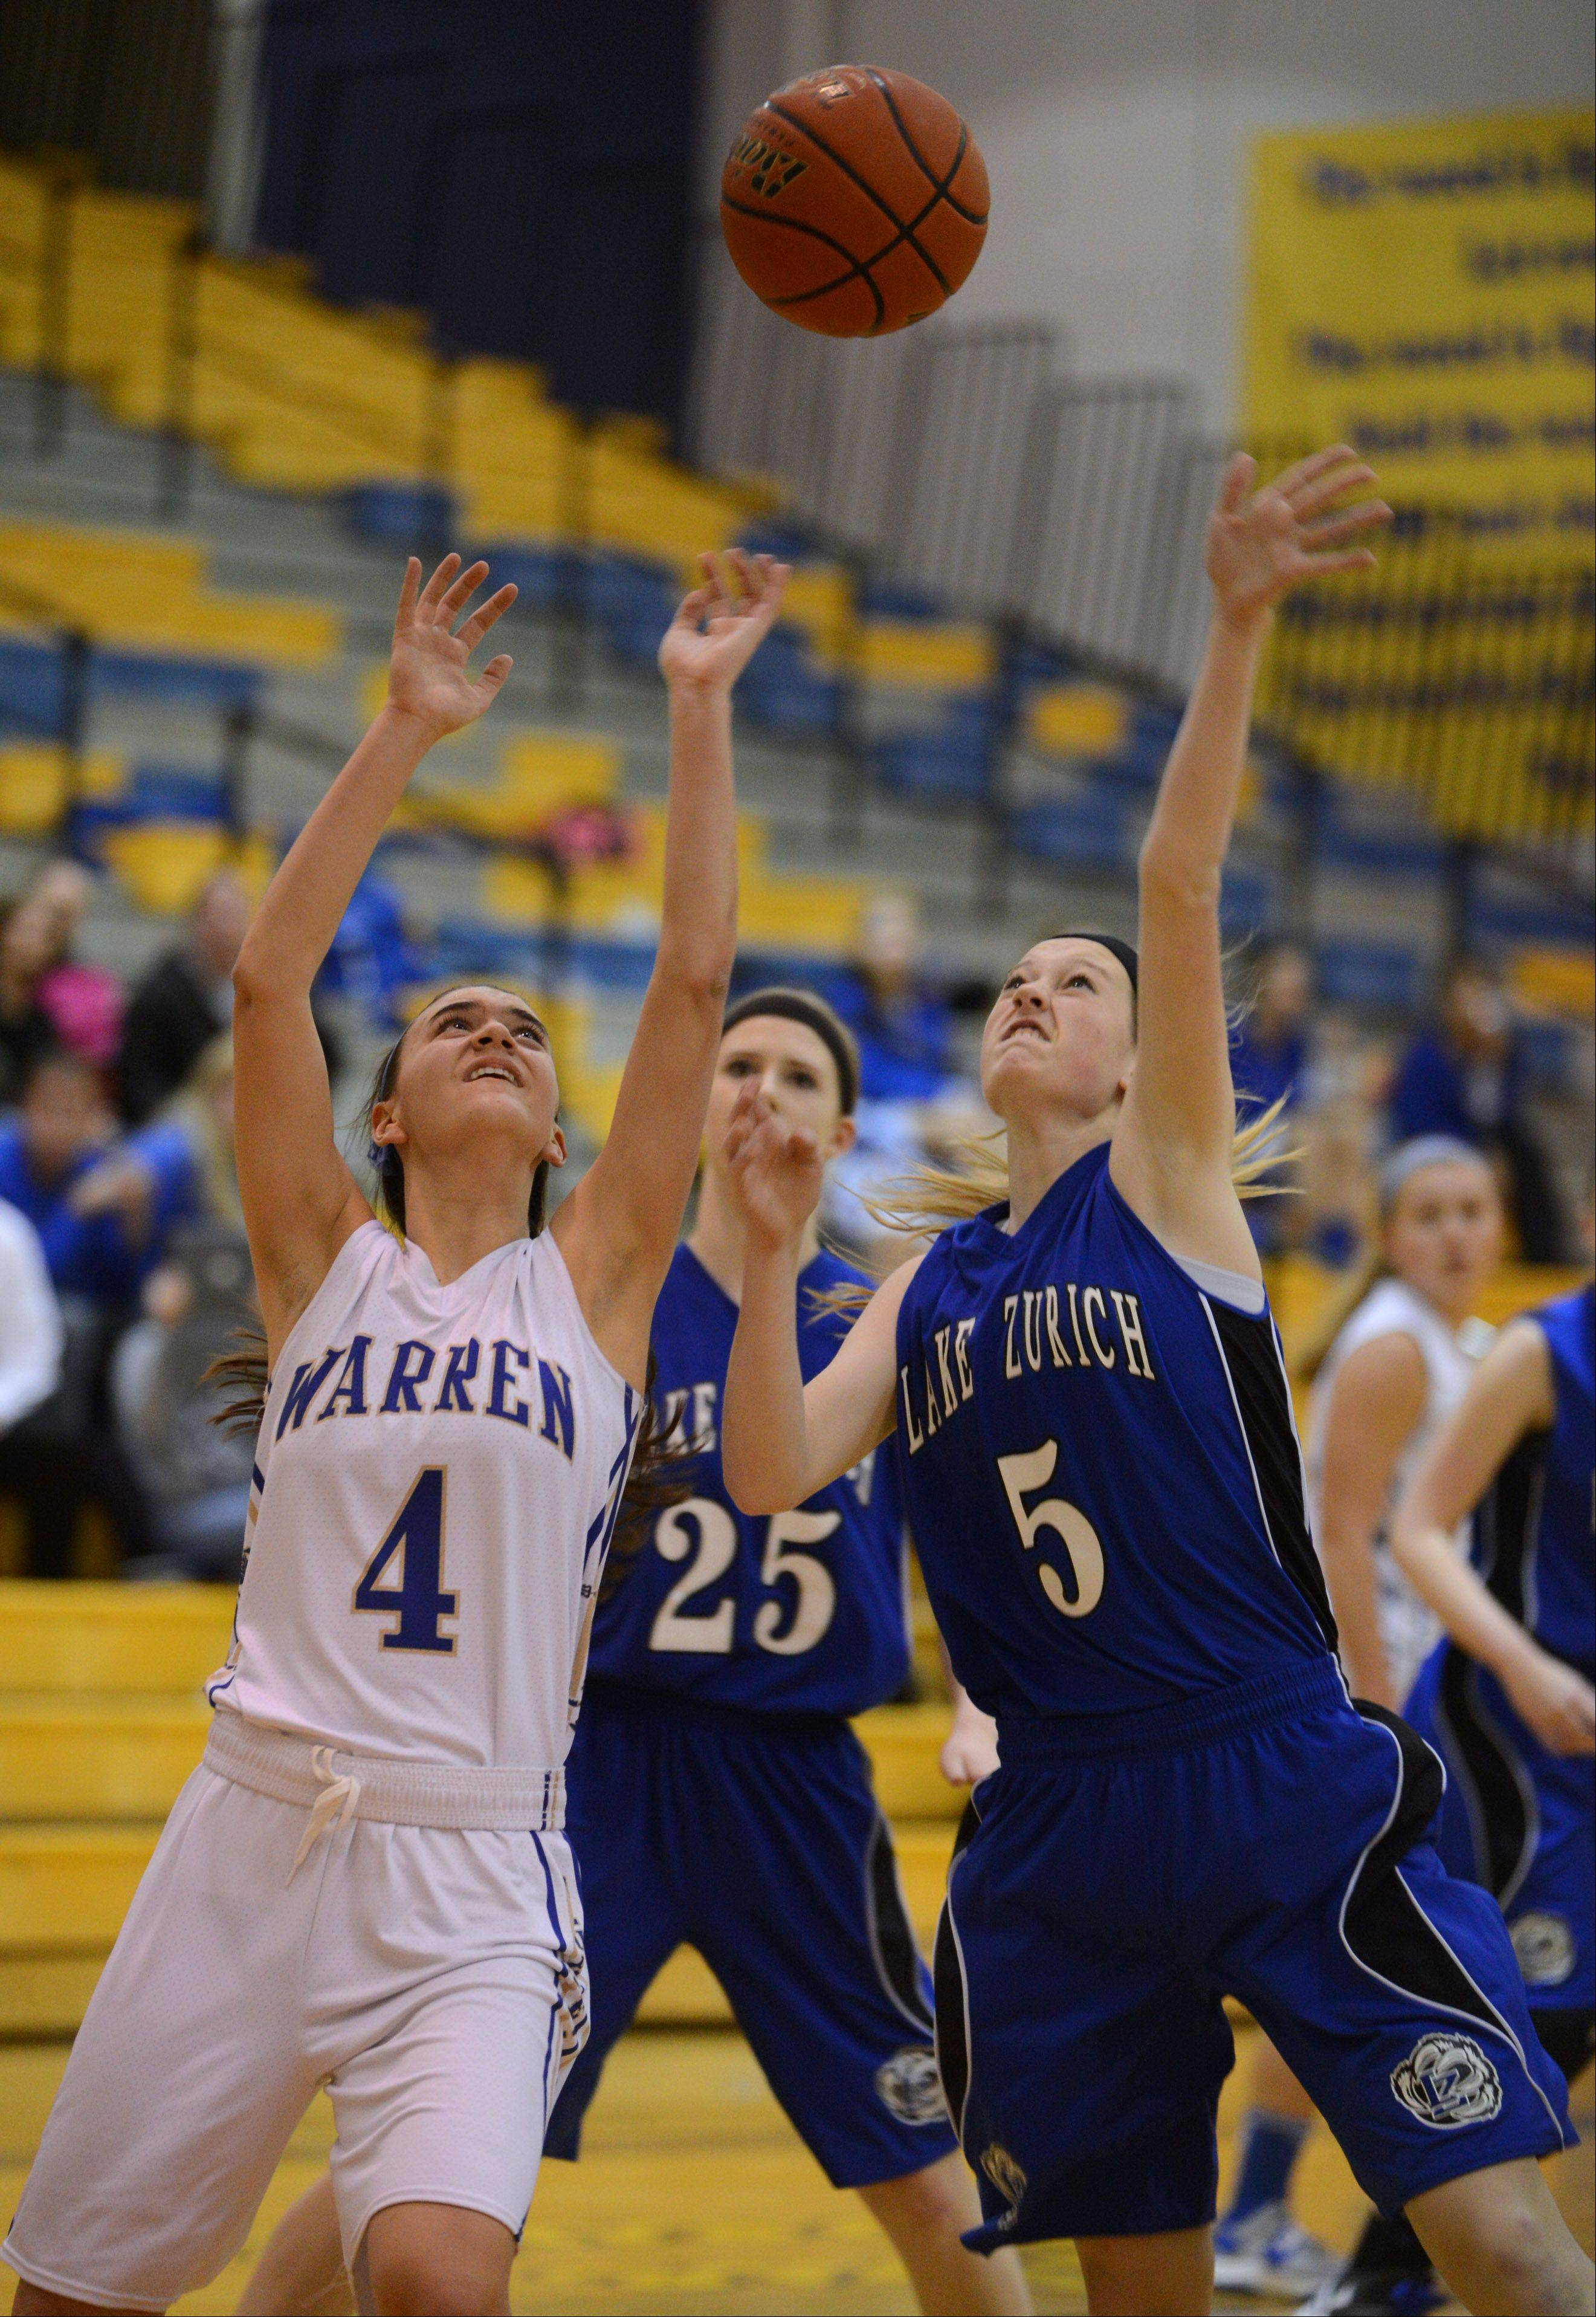 Warren�s Kylie Nedelka (4) and Lake Zurich�s Elly Daleske eye the ball during Monday night�s basketball game in Gurnee.